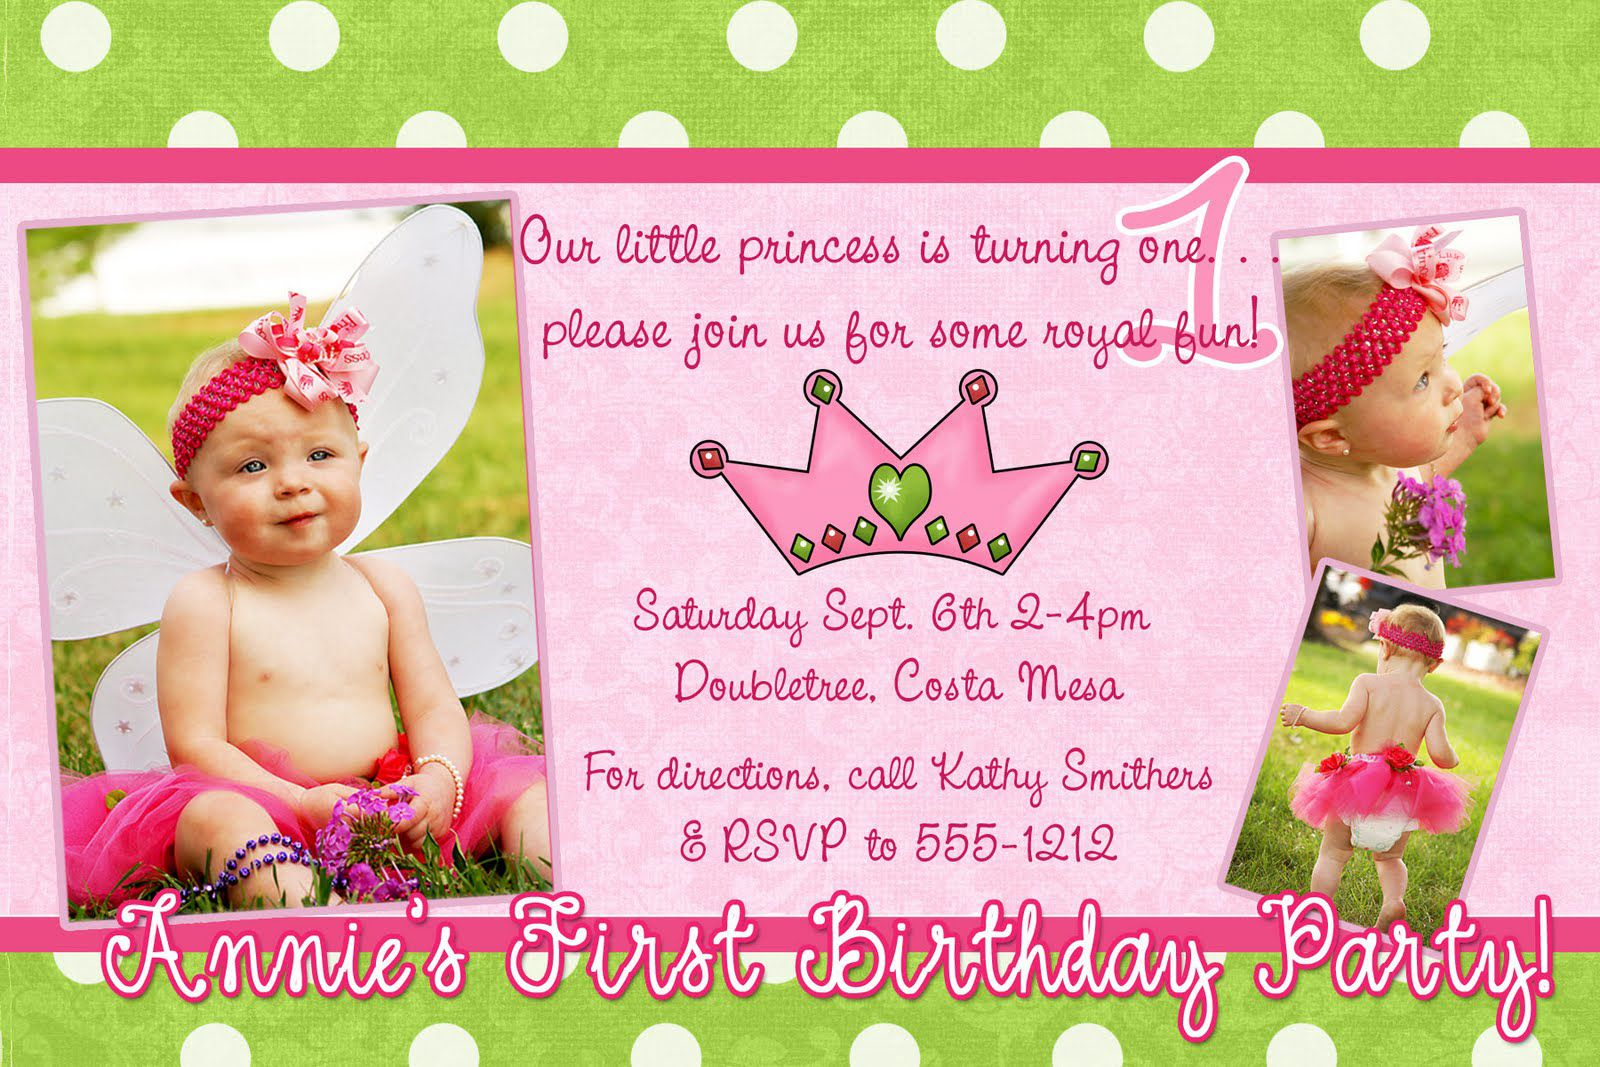 21 kids birthday invitation wording that we can make sample girl birthday invitation wording filmwisefo